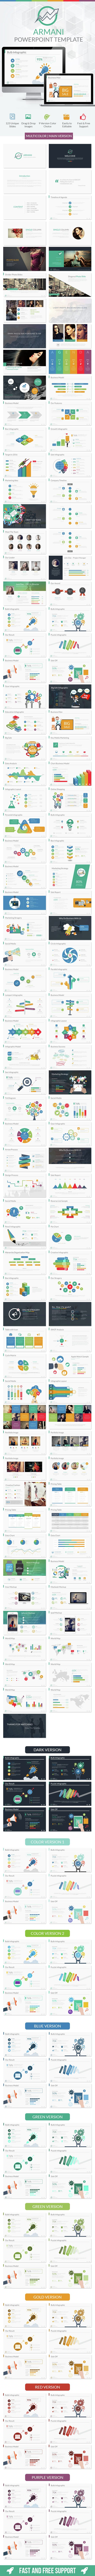 Armani - Multipurpose Powerpoint Presentation Template. Download here: http://graphicriver.net/item/armani-multipurpose-powerpoint-template/14760091?ref=ksioks